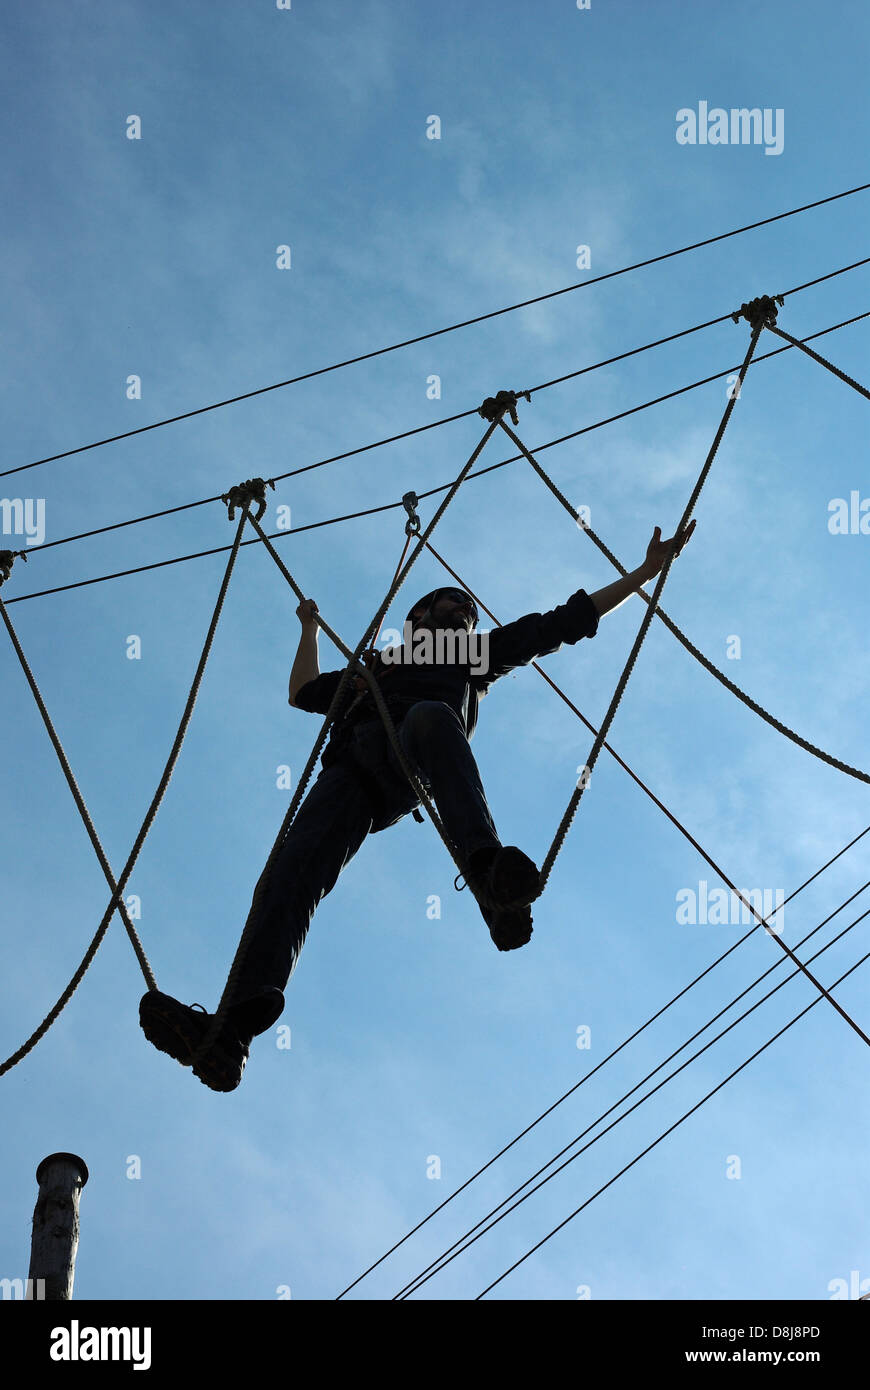 L Ropes Stock Photos & L Ropes Stock Images - Alamy